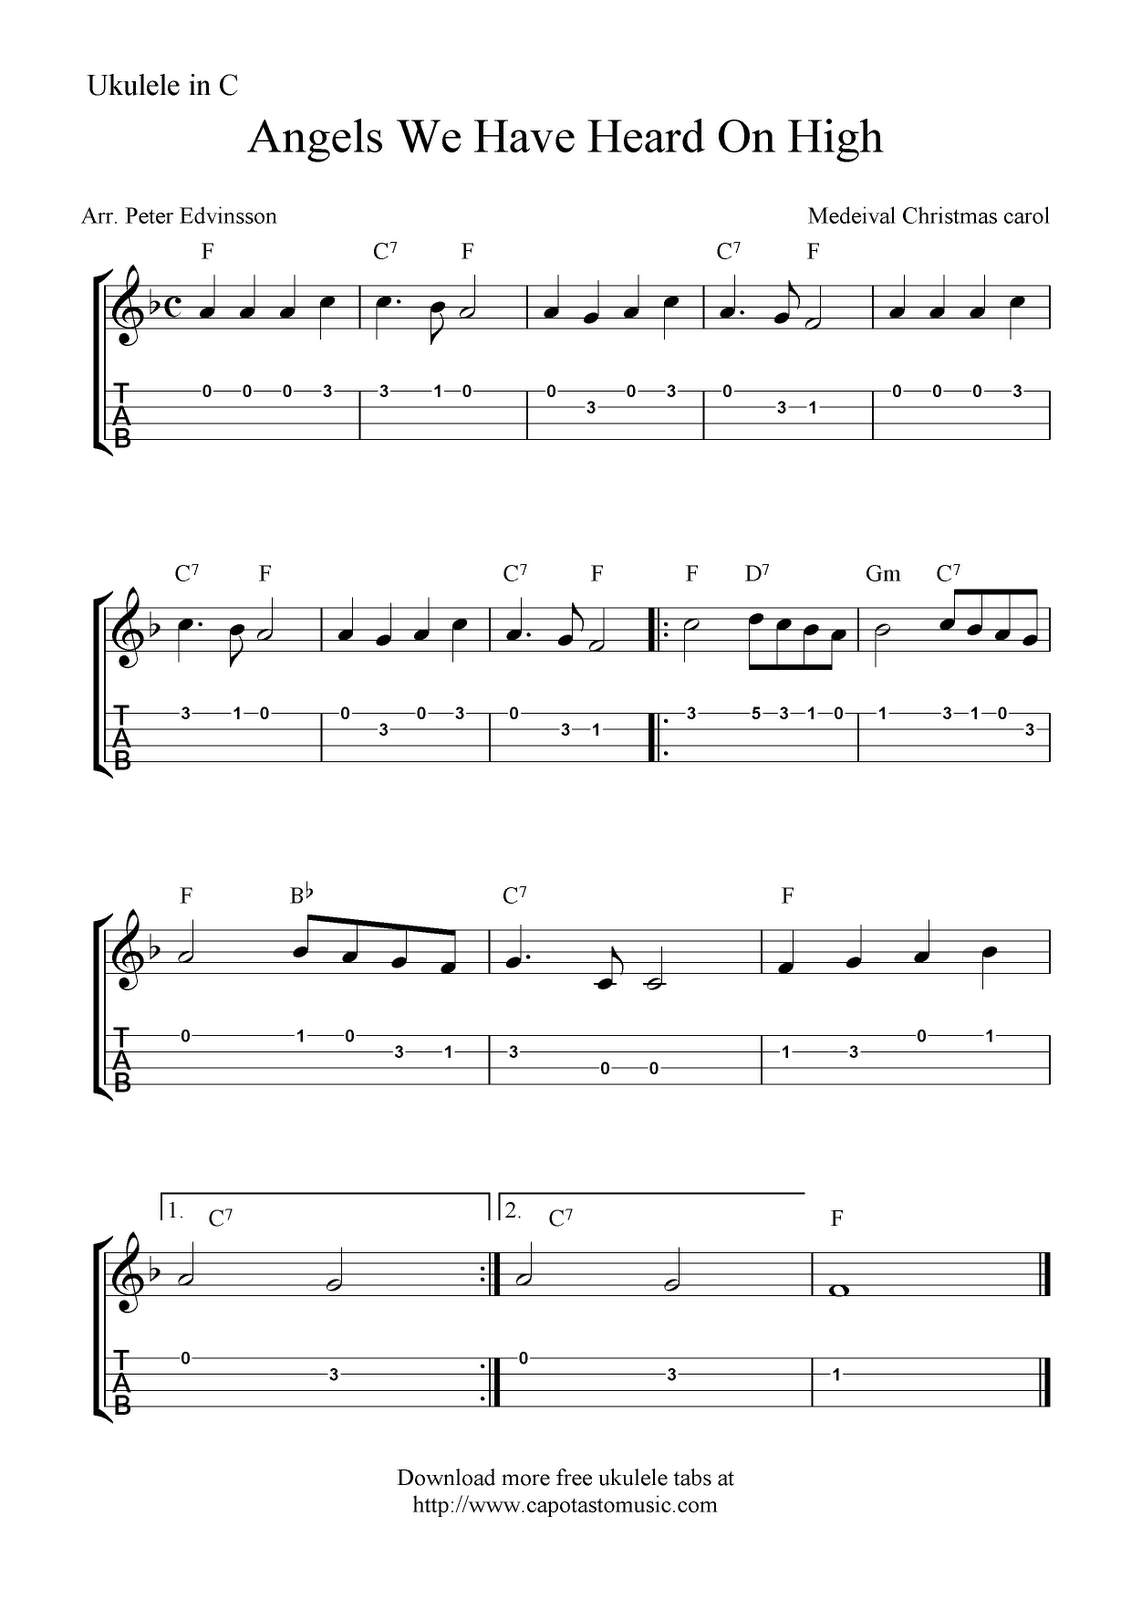 House of the rising sun listen to songs like this and more at angels we have heard on high ukulele sheet music free printable hexwebz Images